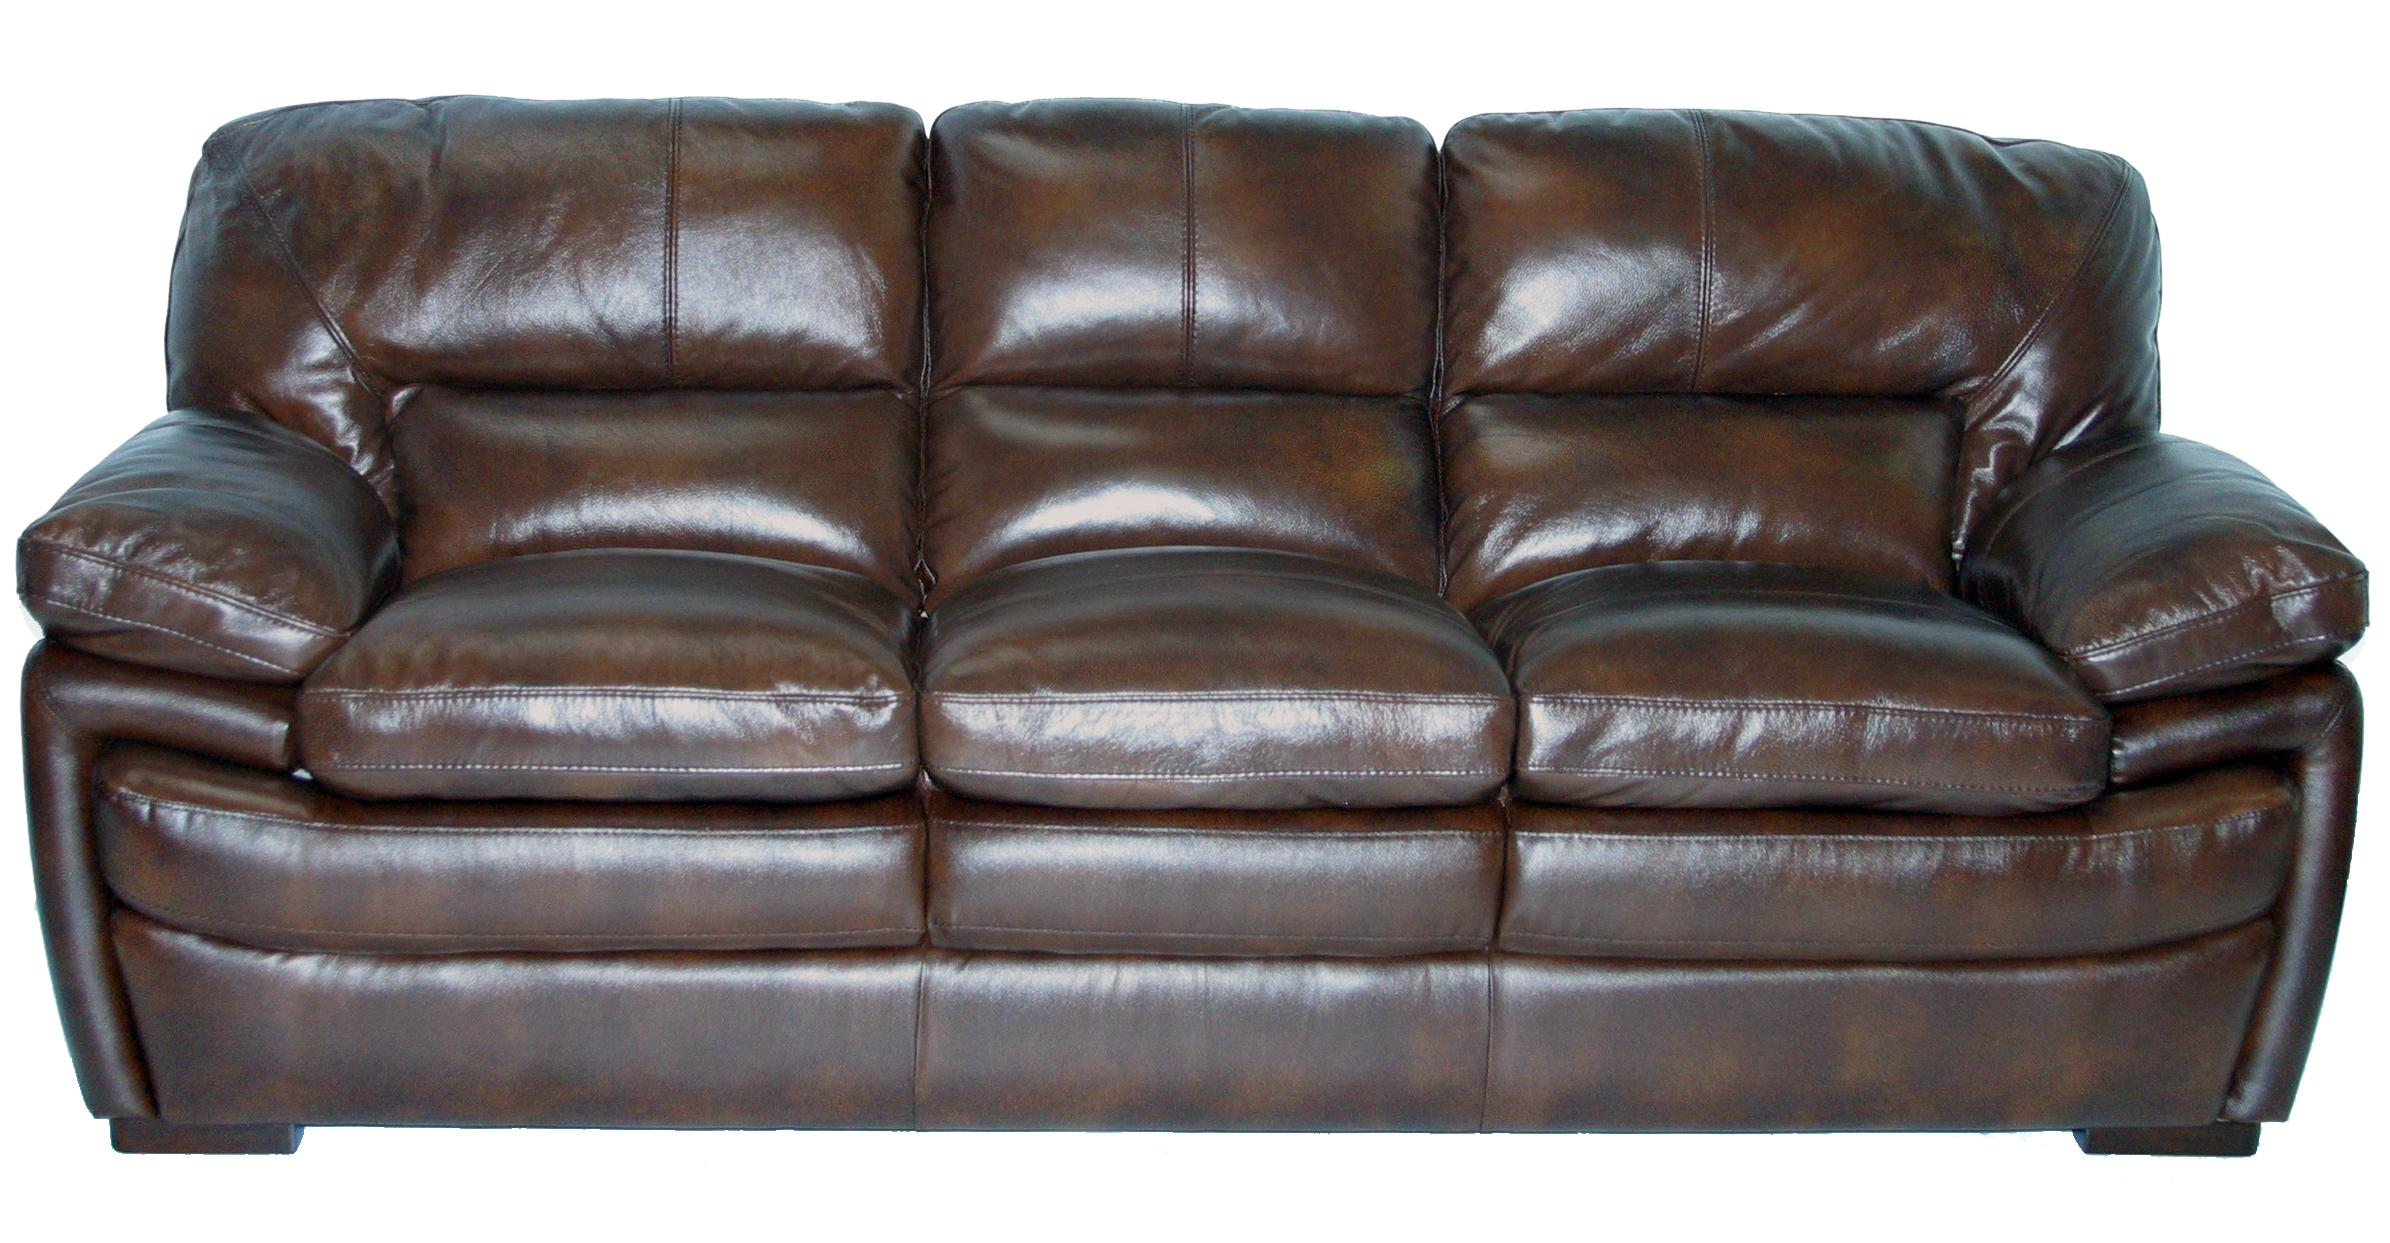 3592 Sofa by Violino at Furniture Superstore - Rochester, MN